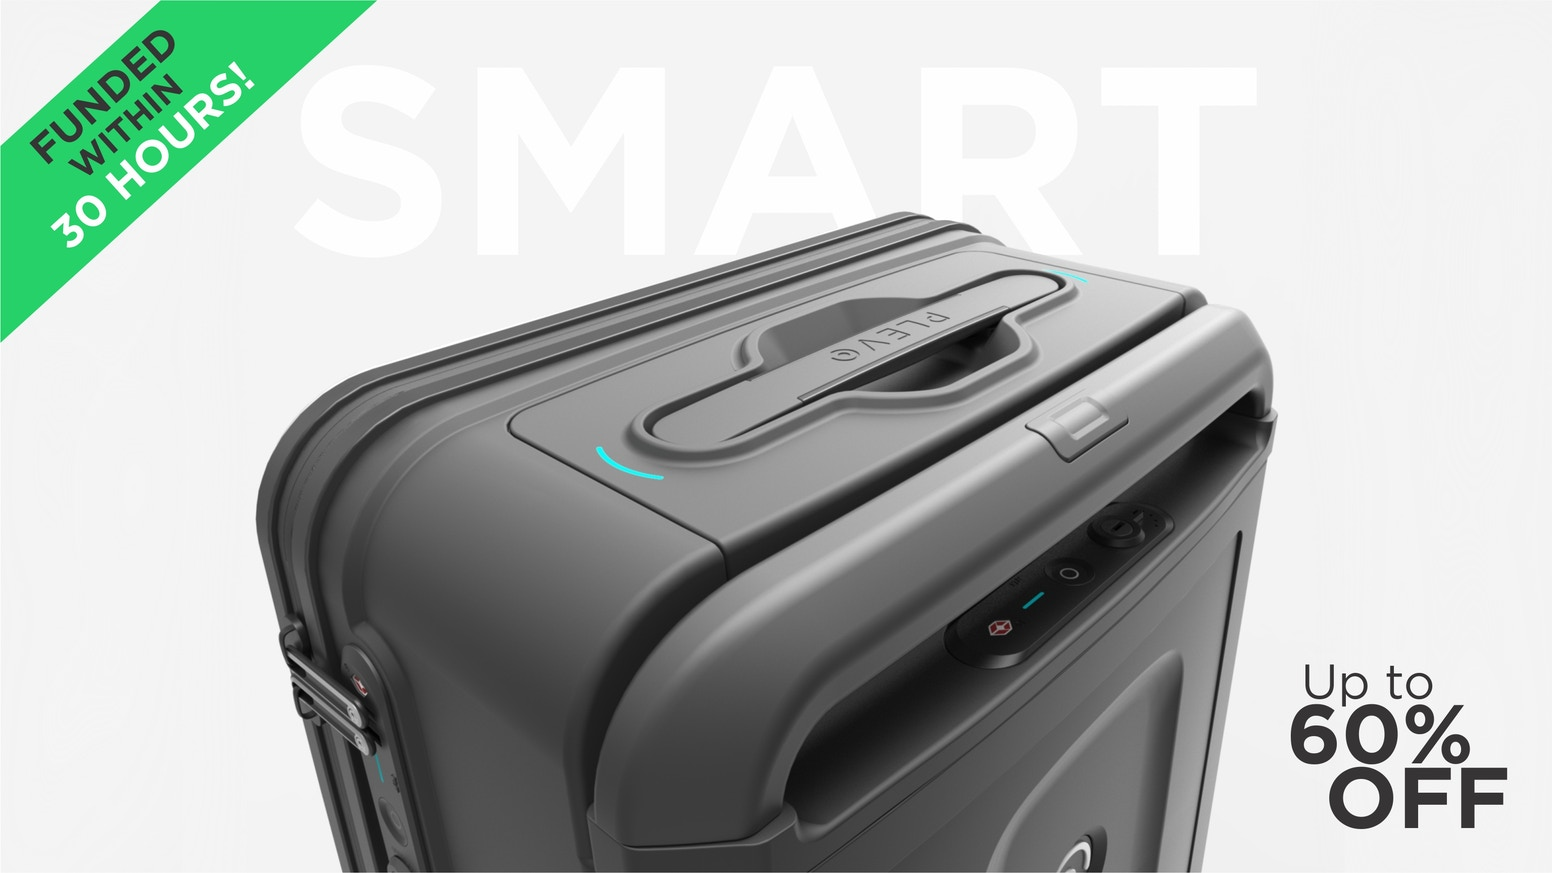 Three Smart Products. Removable Battery Pack, GPS Tracking, Smart Lock, Built-in Digital Scale,  Garment Hanger, Travel Assistant App